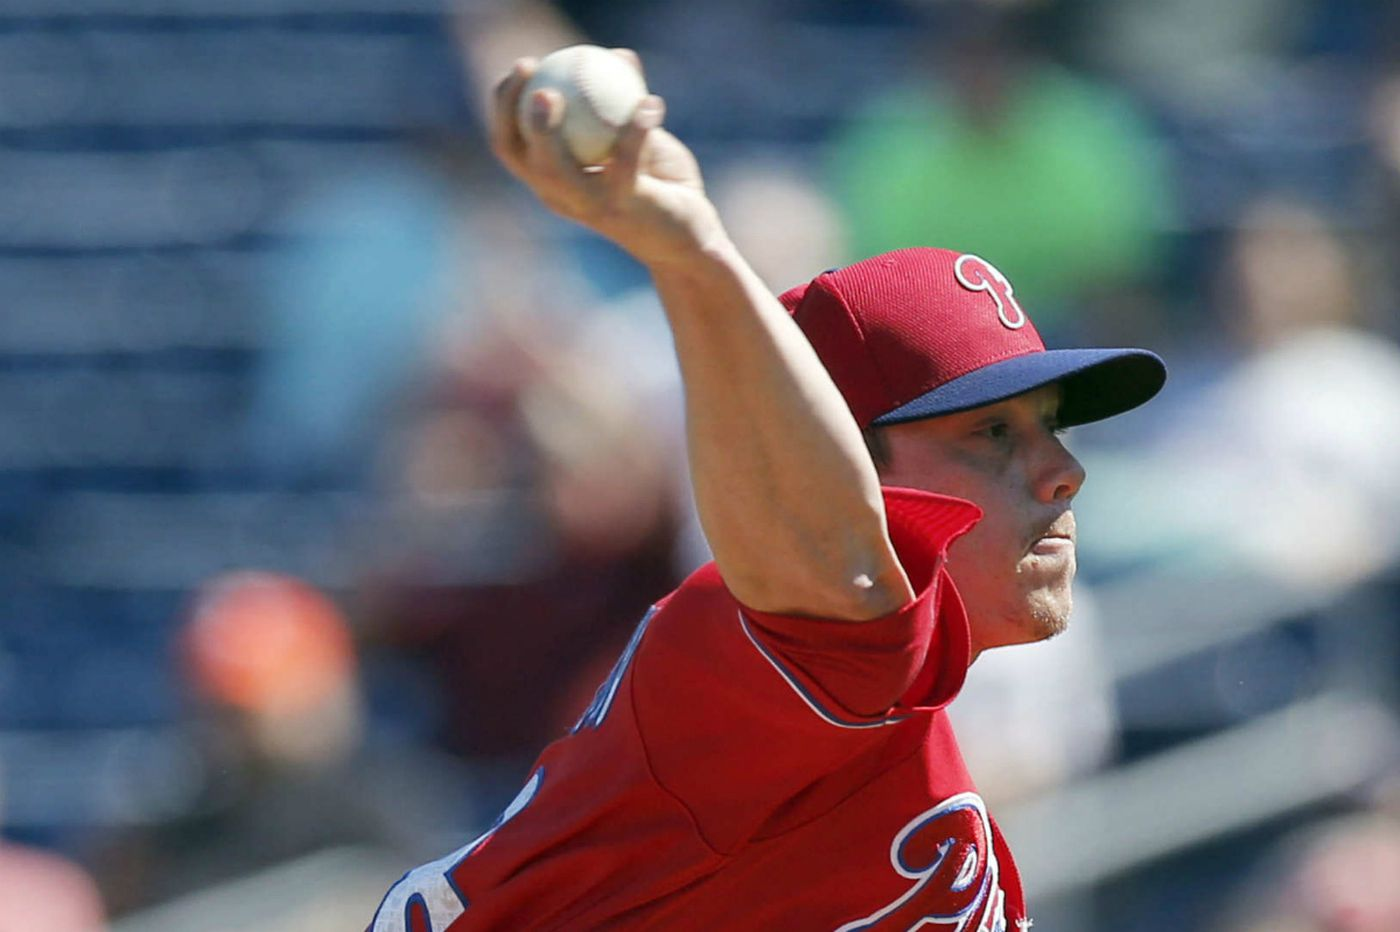 Phillies' Hellickson will make first opening-day start